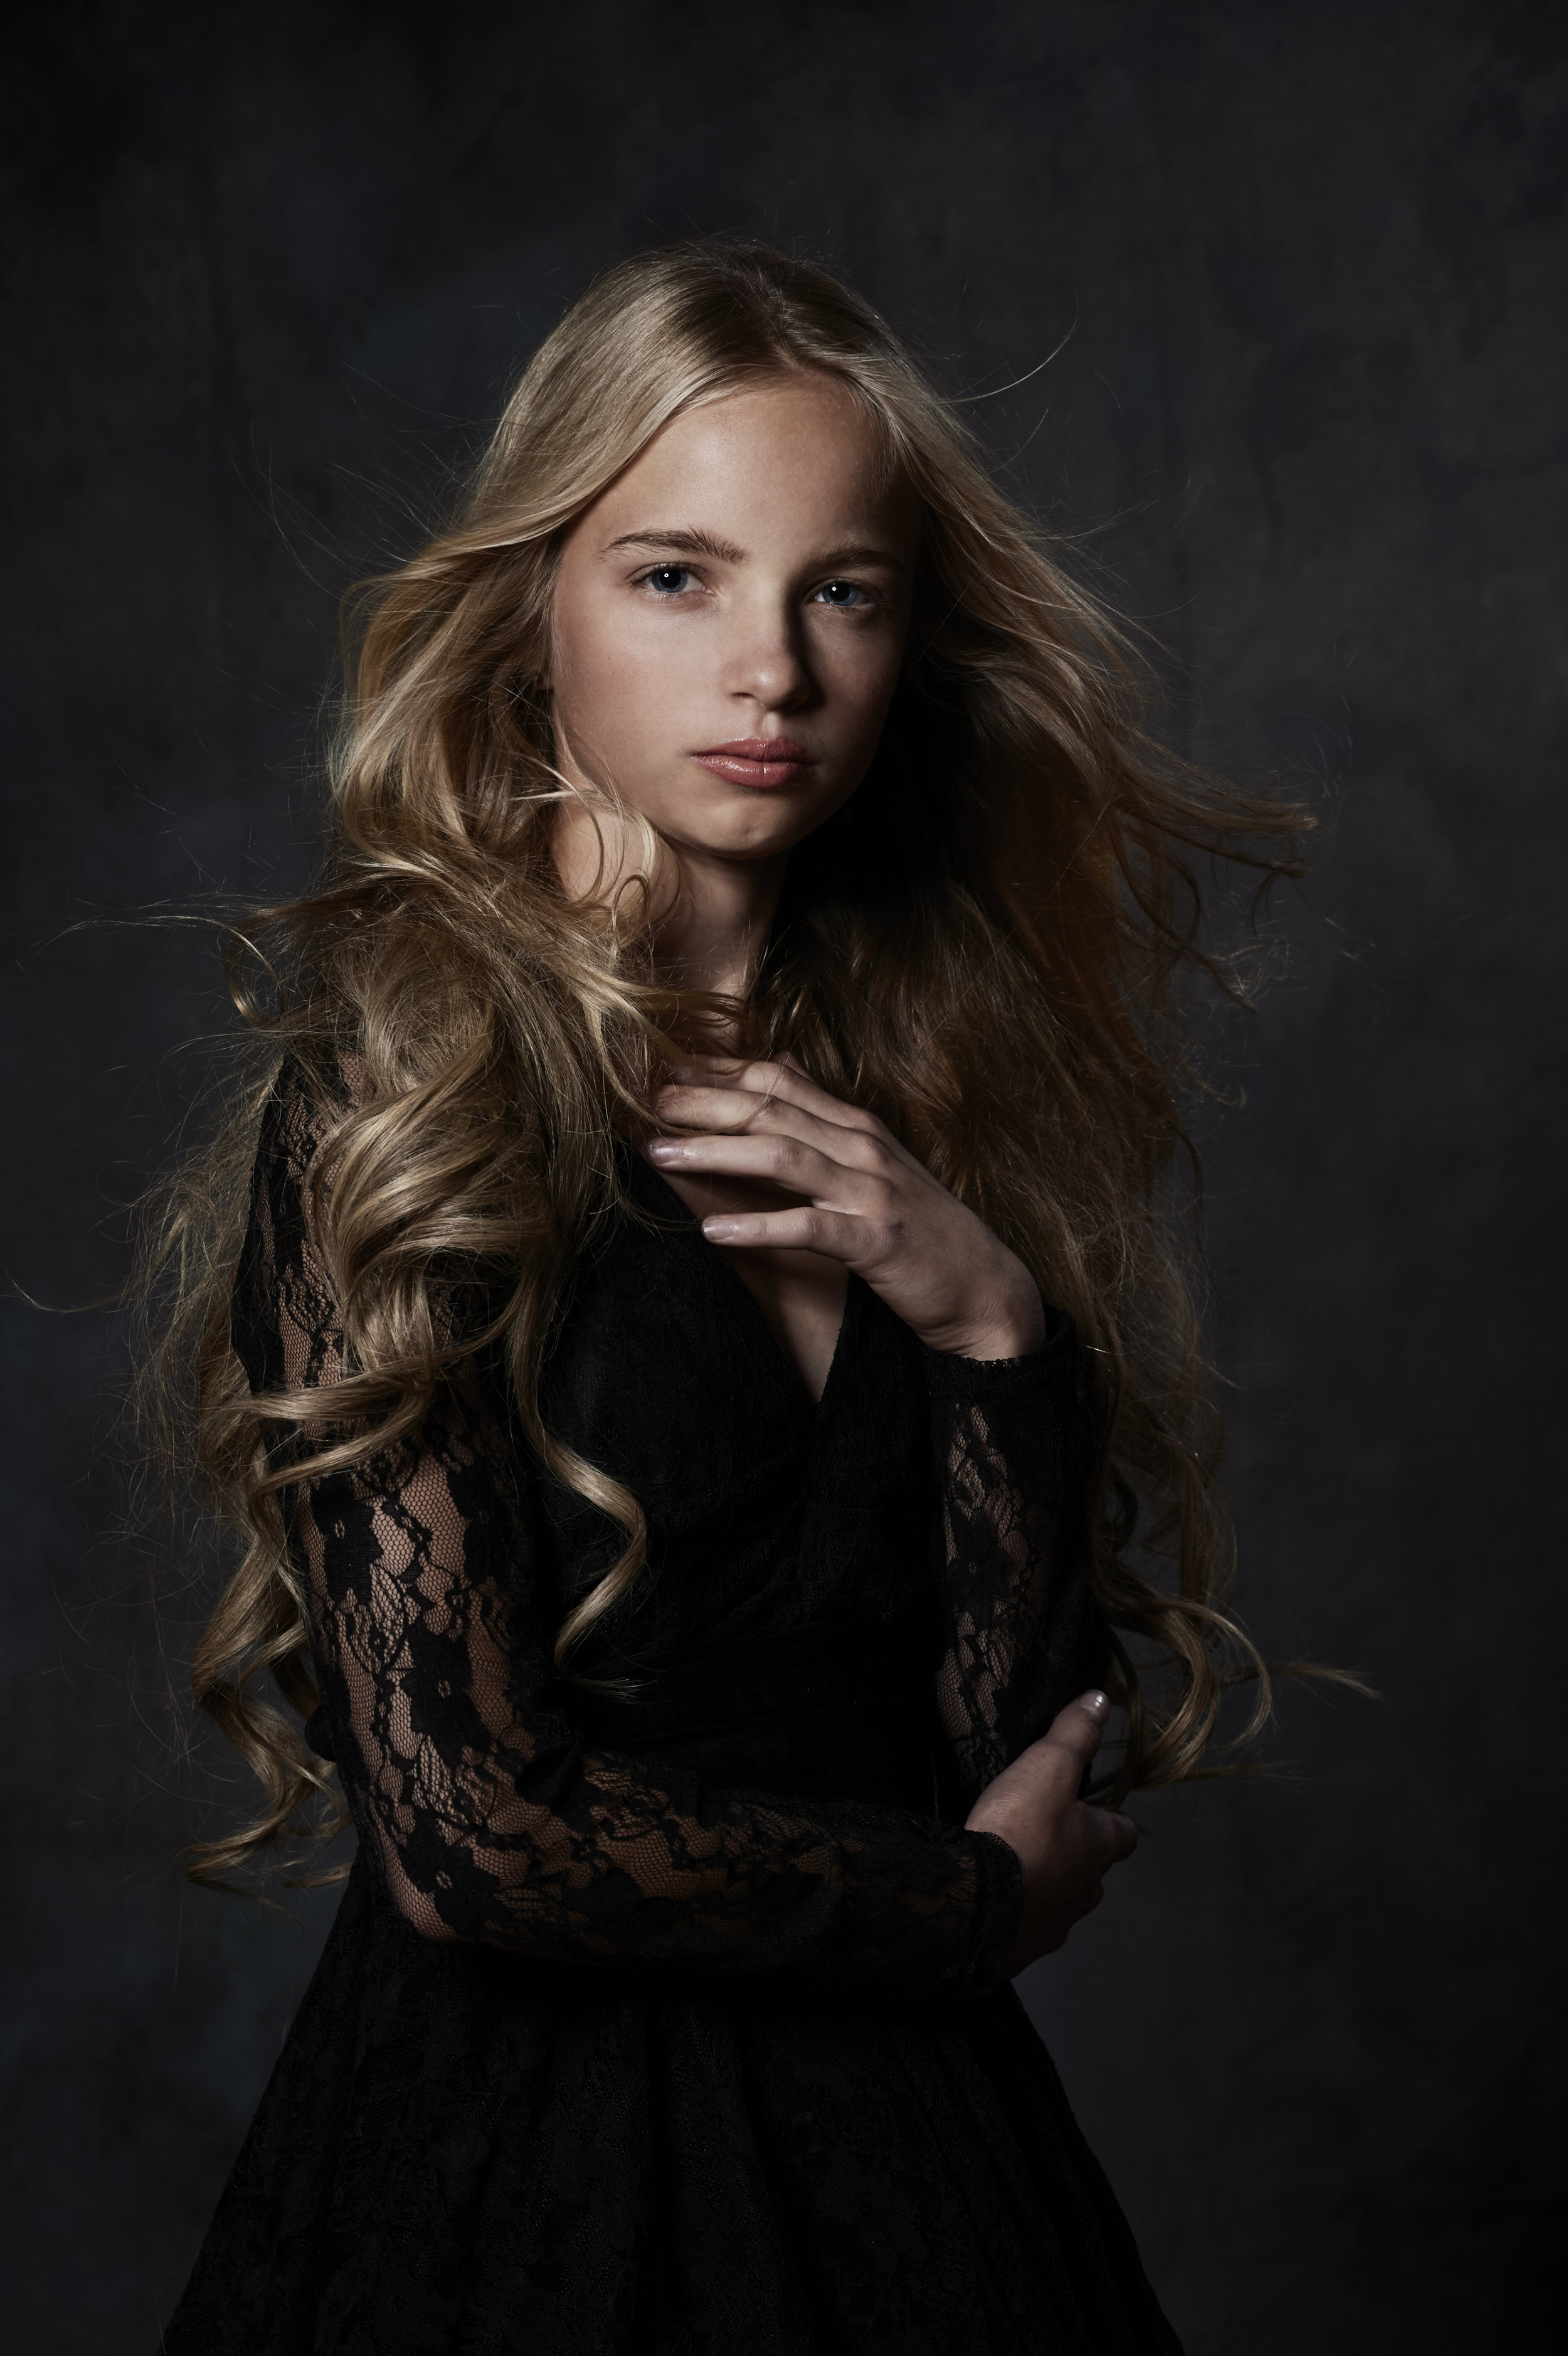 marta-hewson-young girl with long blonde hair blowing in the wind.jpg